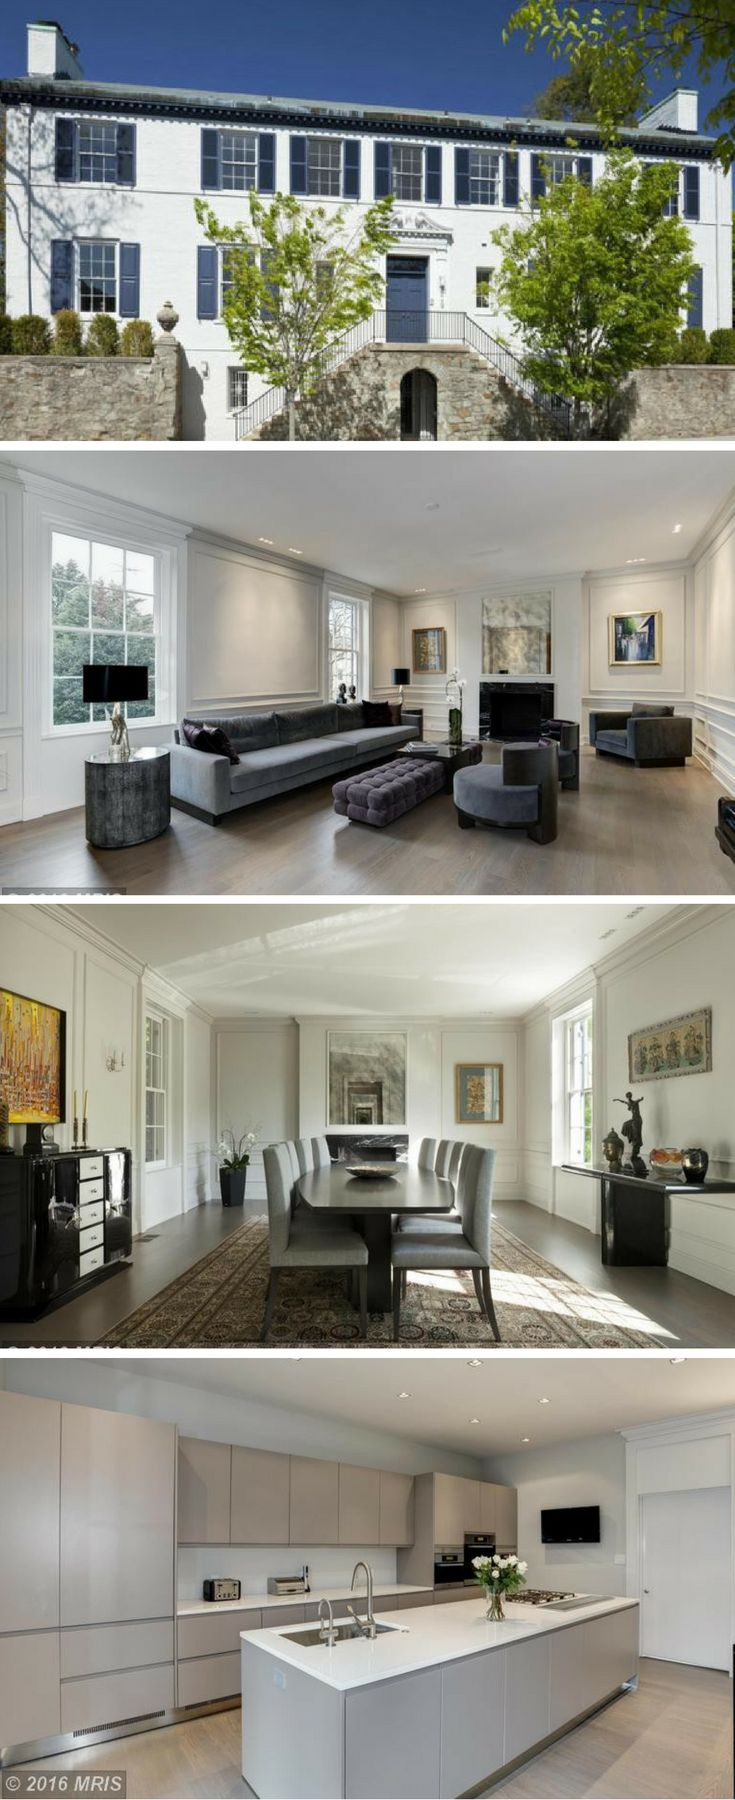 Prepare to meet your new first daughter-to-be, Washington, DC! Ivanka Trump and her husband, Jared Kushner, have reportedly picked up a six-bedroom, seven-bath house in the upscale neighborhood of Kalorama. Take a peek inside!